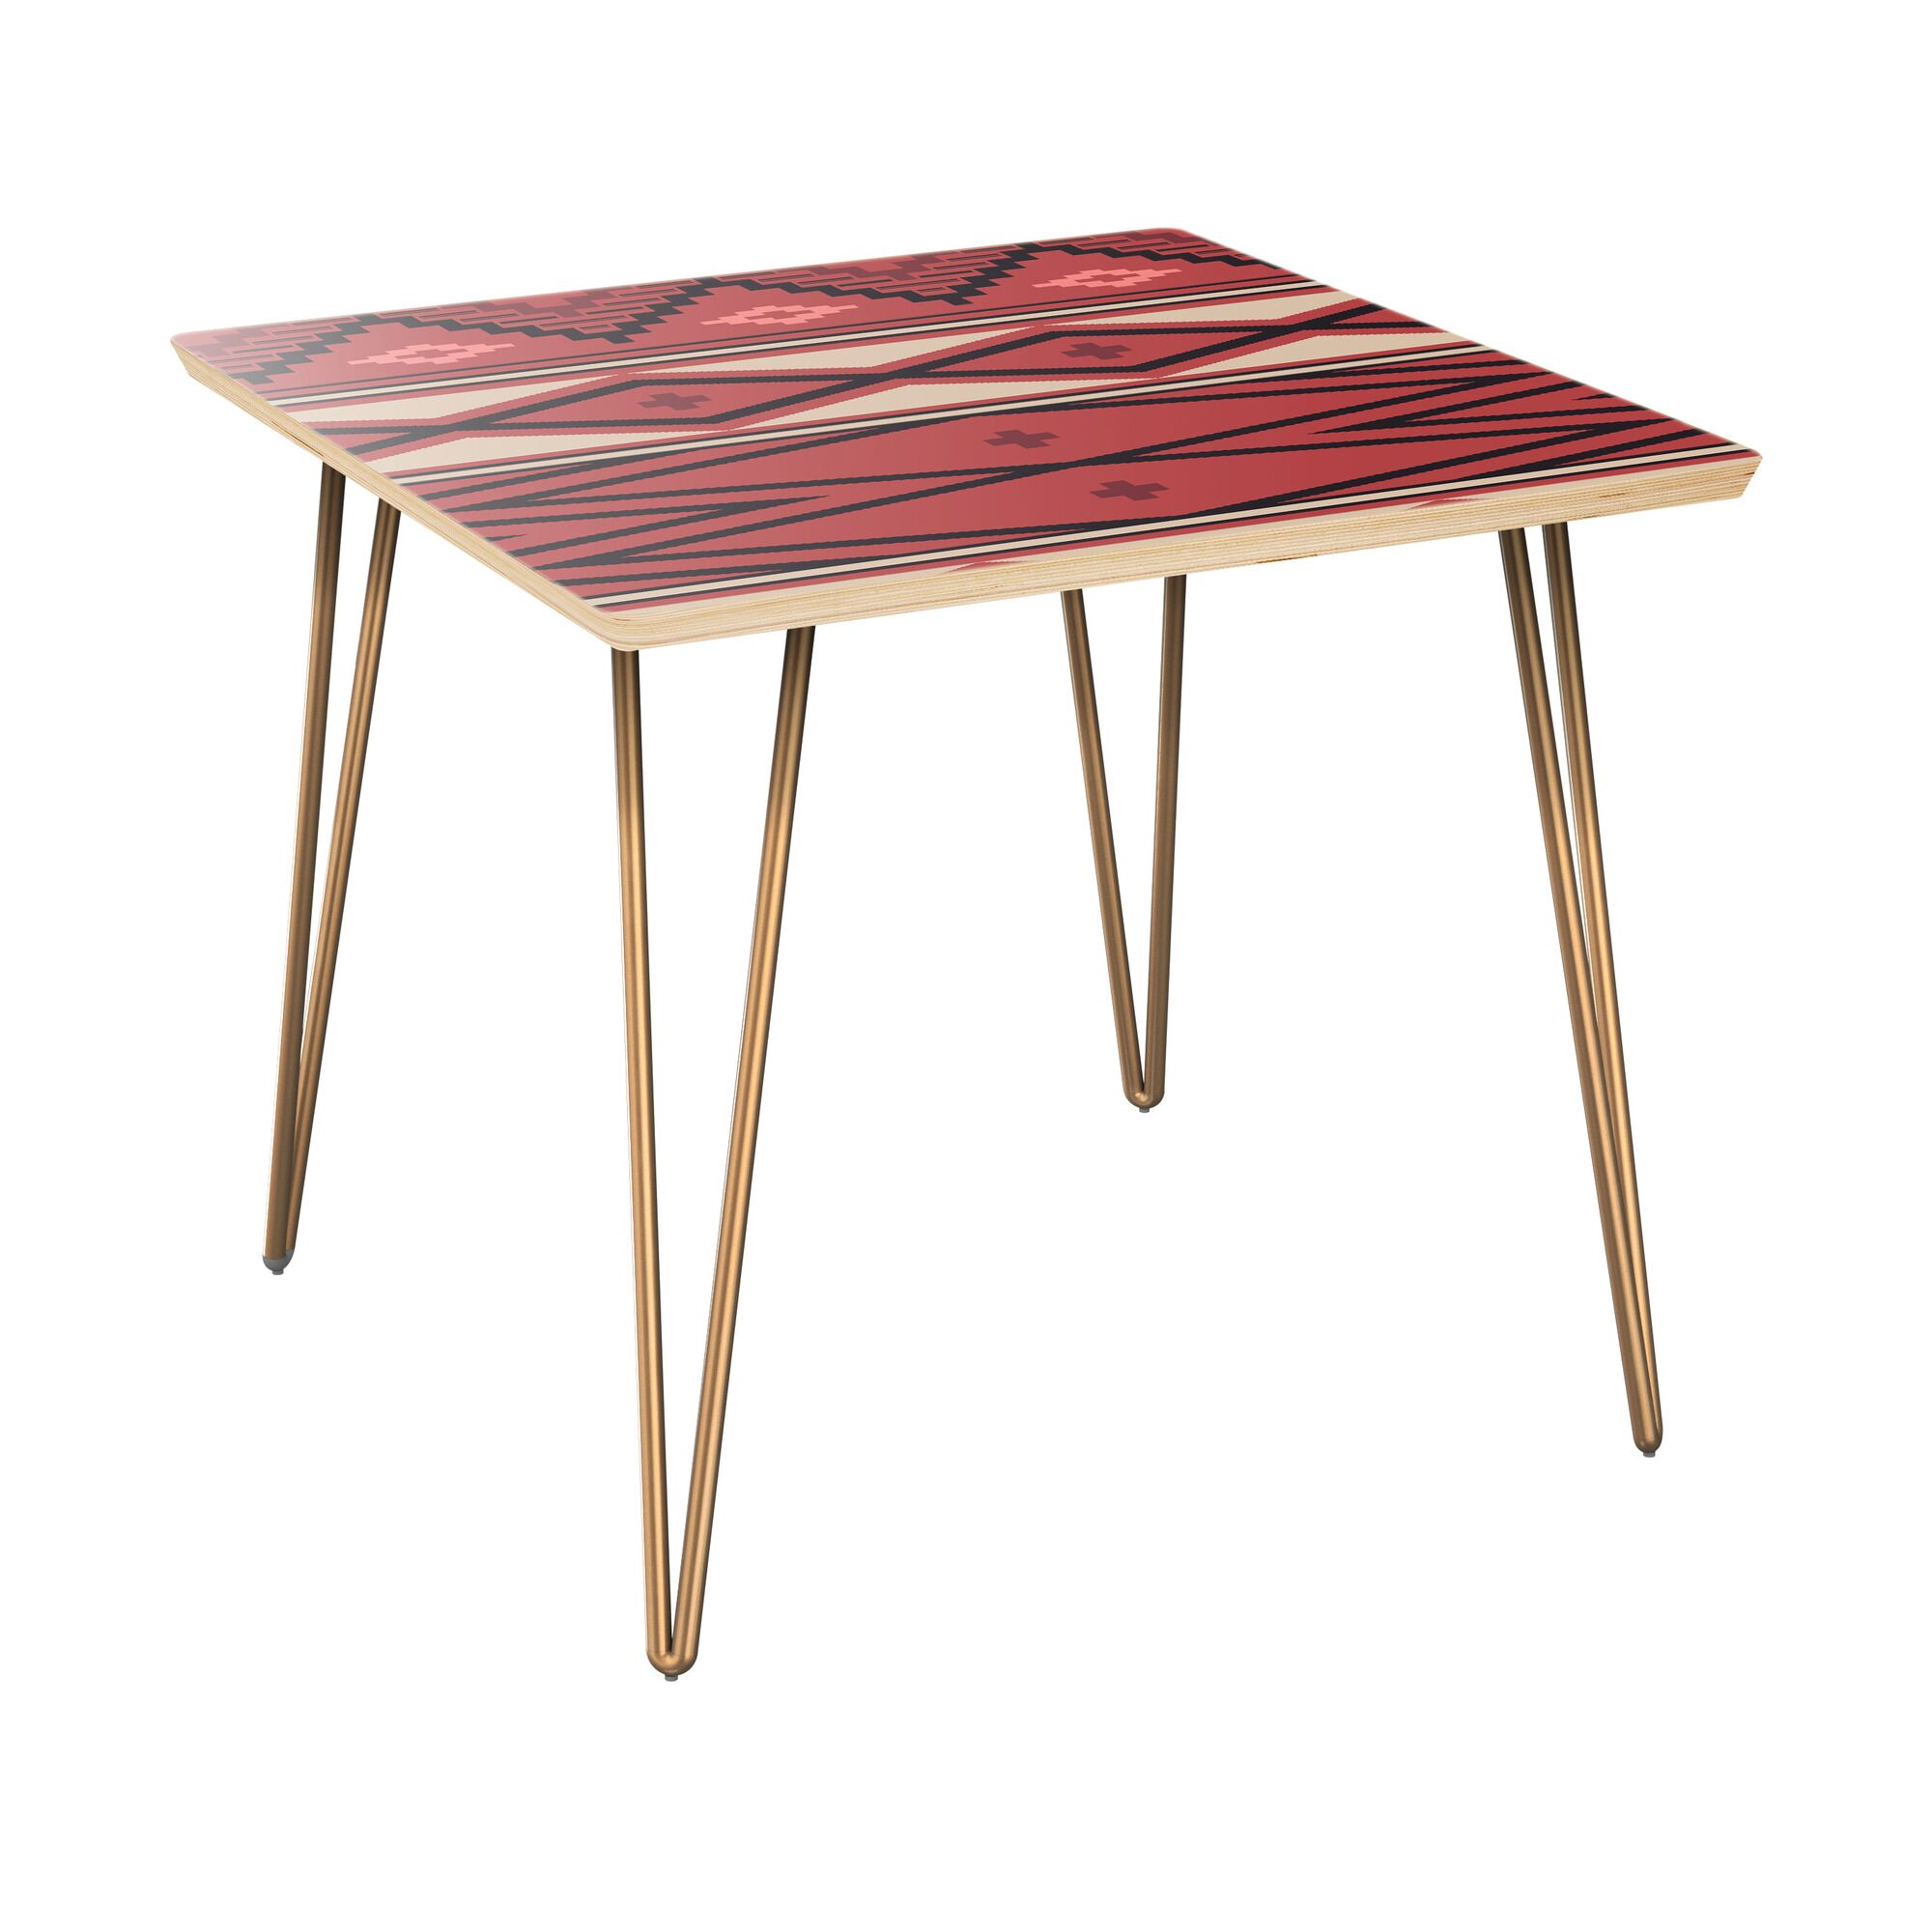 Hulbert End Table Table Top Boarder Color: Natural, Table Base Color: Brass, Table Top Color: Pink/Blue